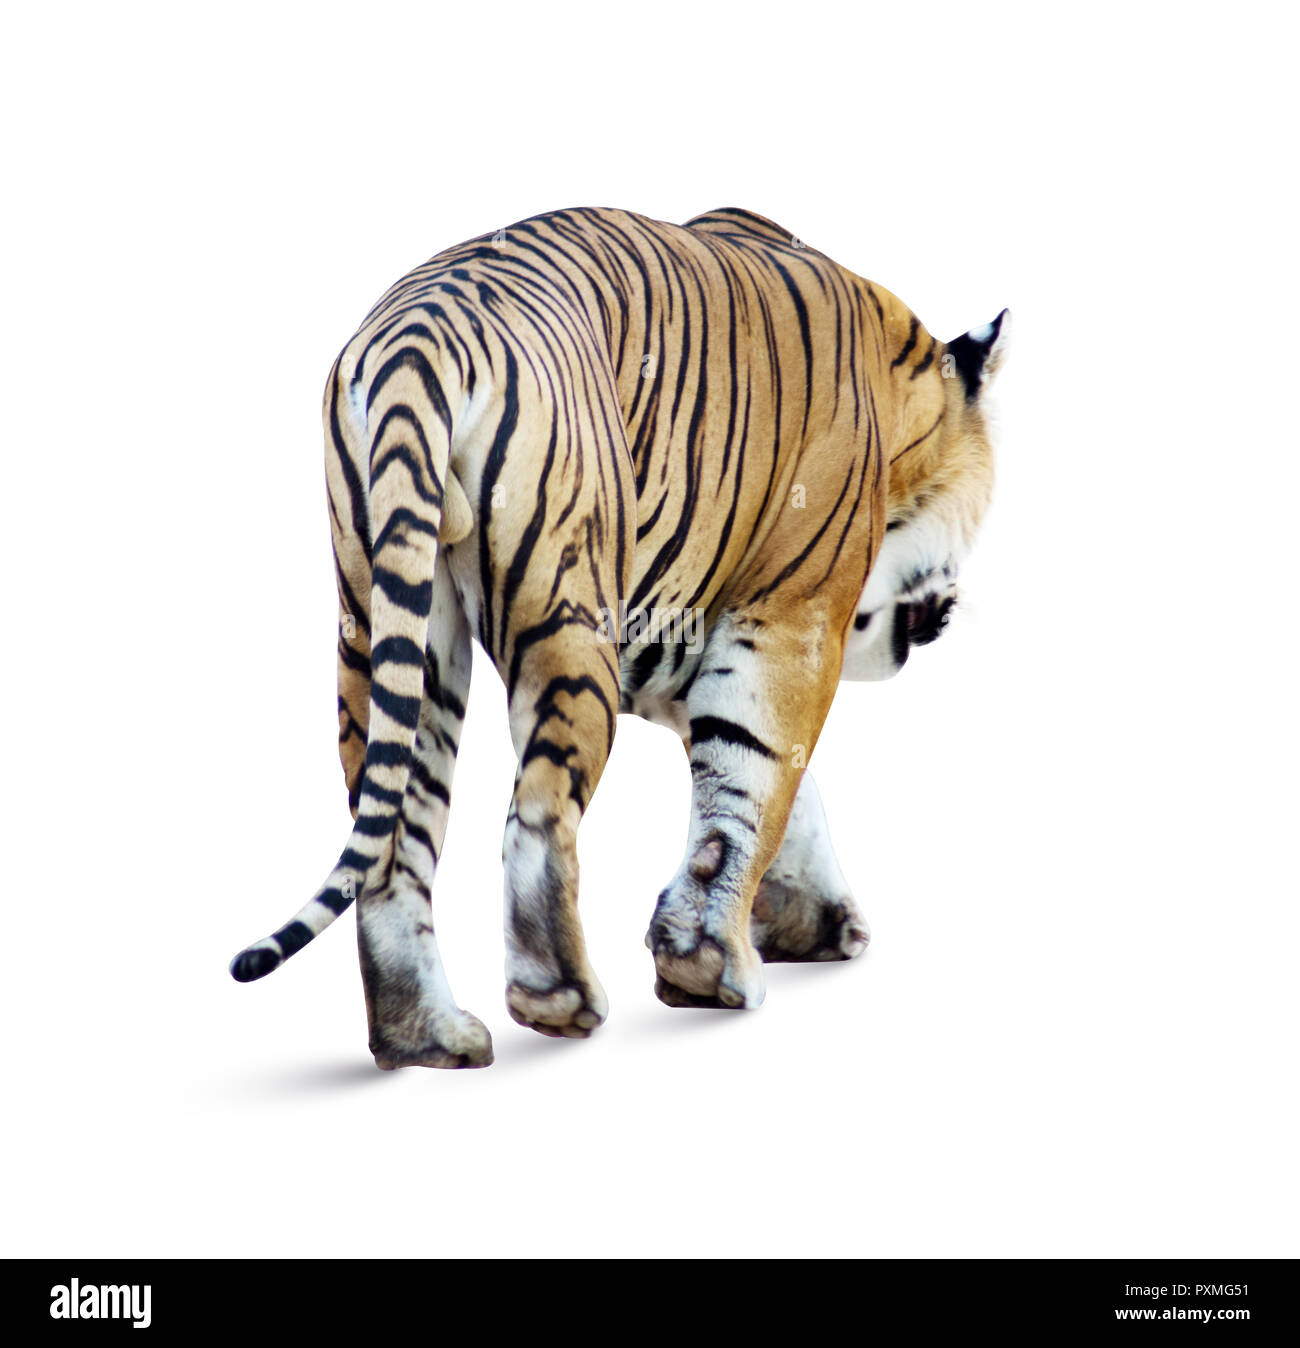 isolated Tiger on white background. Tiger in the natural habitat. Tiger male walking head-on composition. beautiful Indian tiger, Panthera tigris Stock Photo